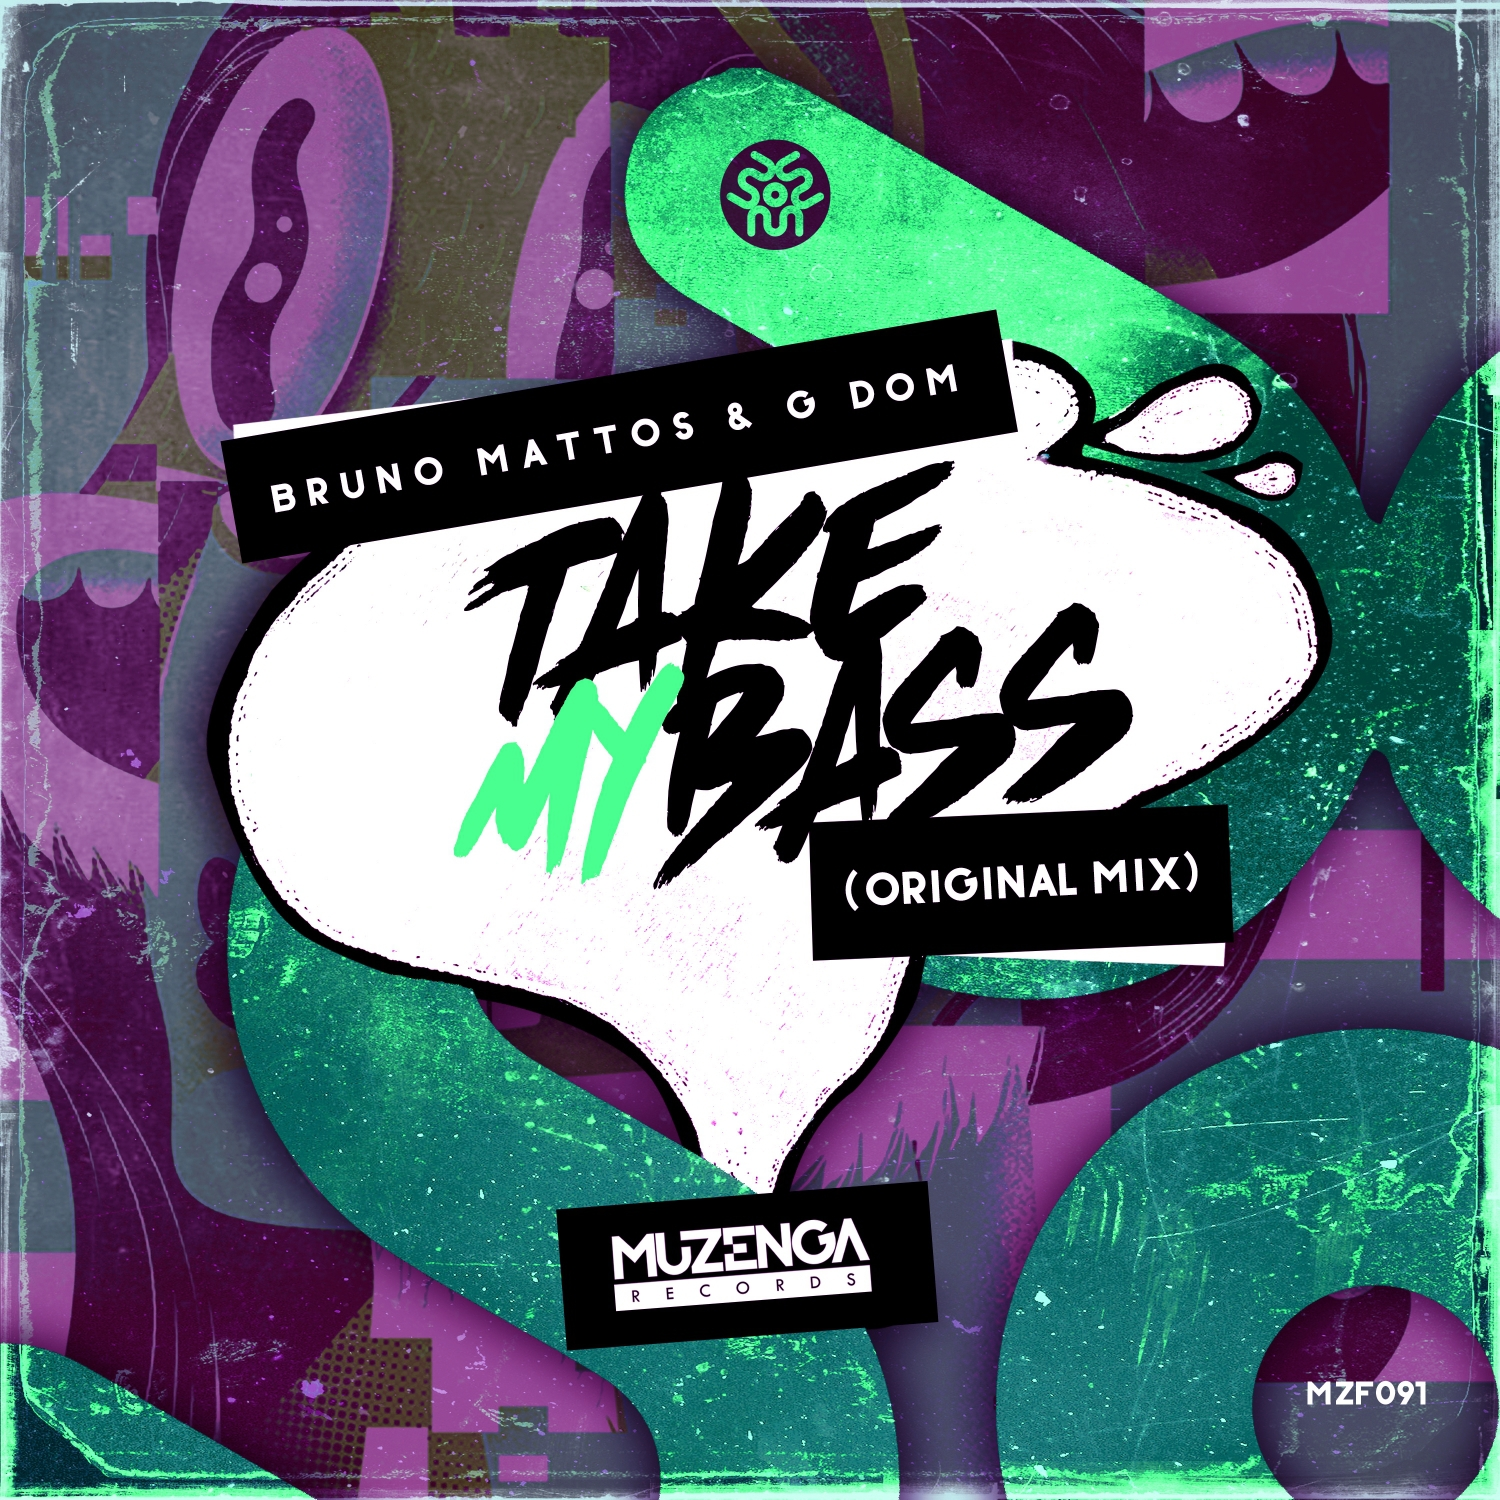 Bruno Mattos & G DOM - Take My Bass (Original Mix)